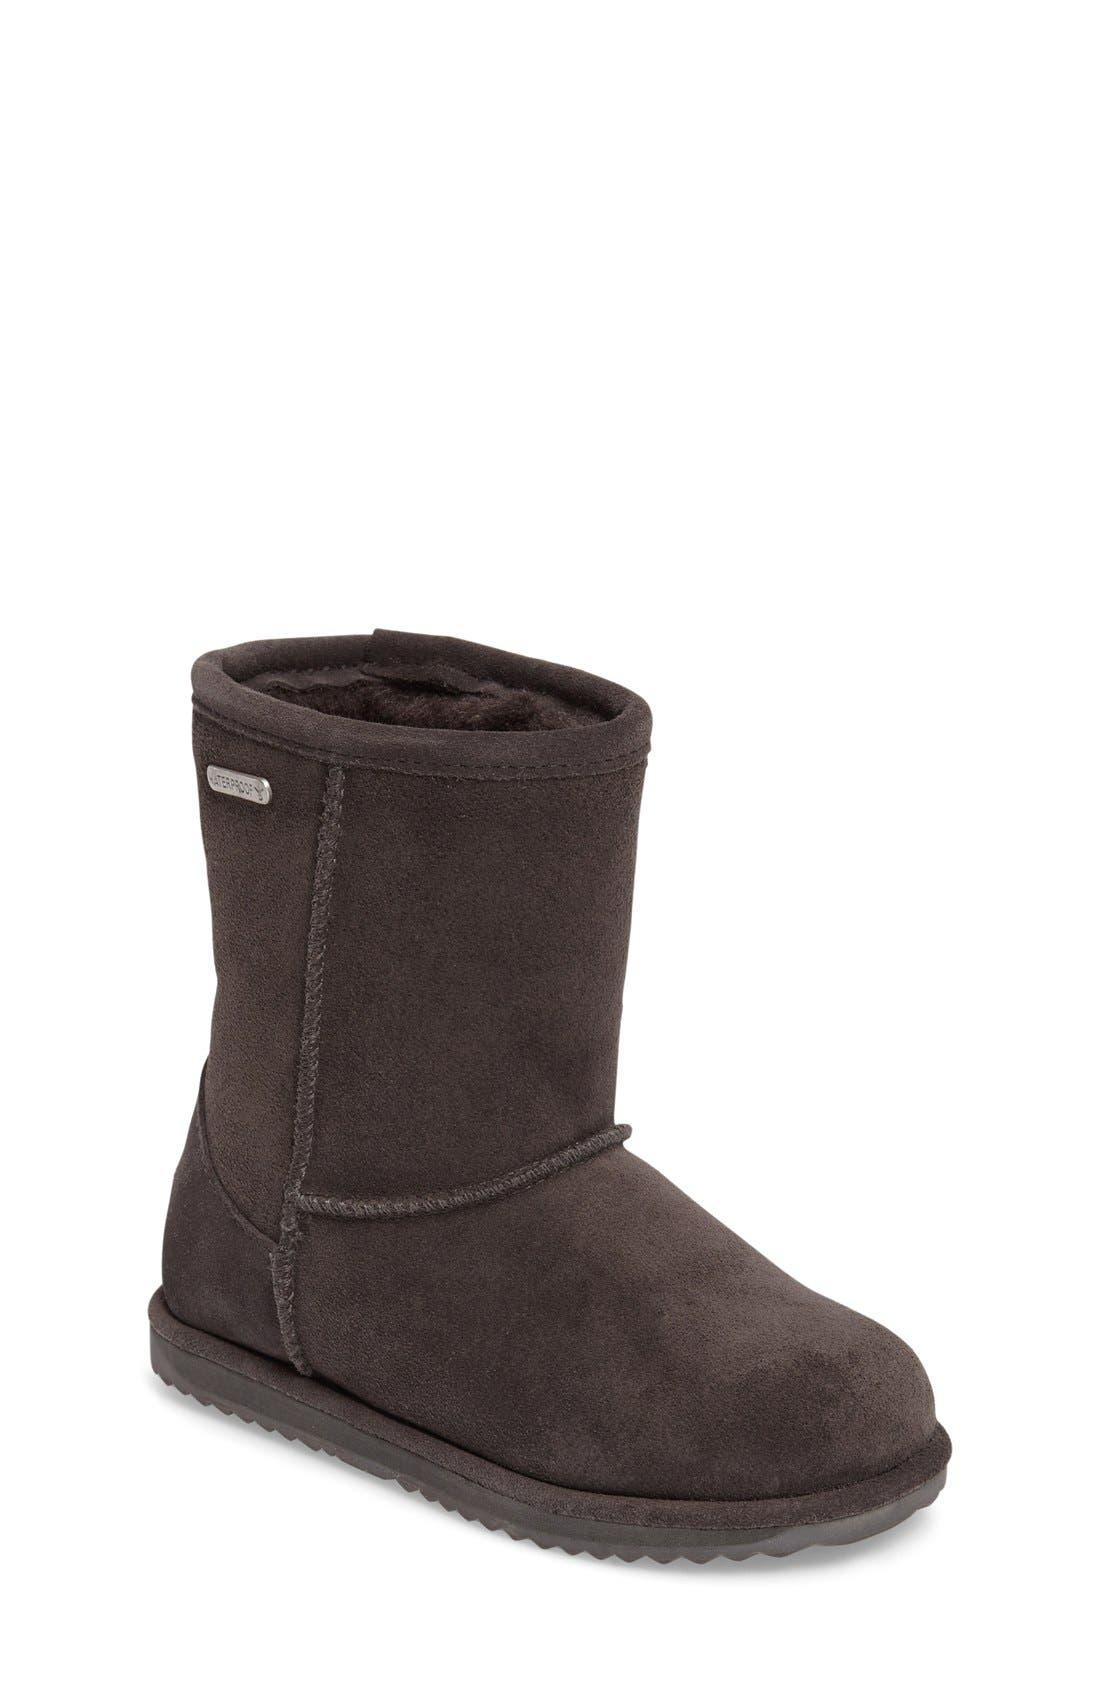 Brumby Waterproof Boot,                             Main thumbnail 1, color,                             Charcoal Suede